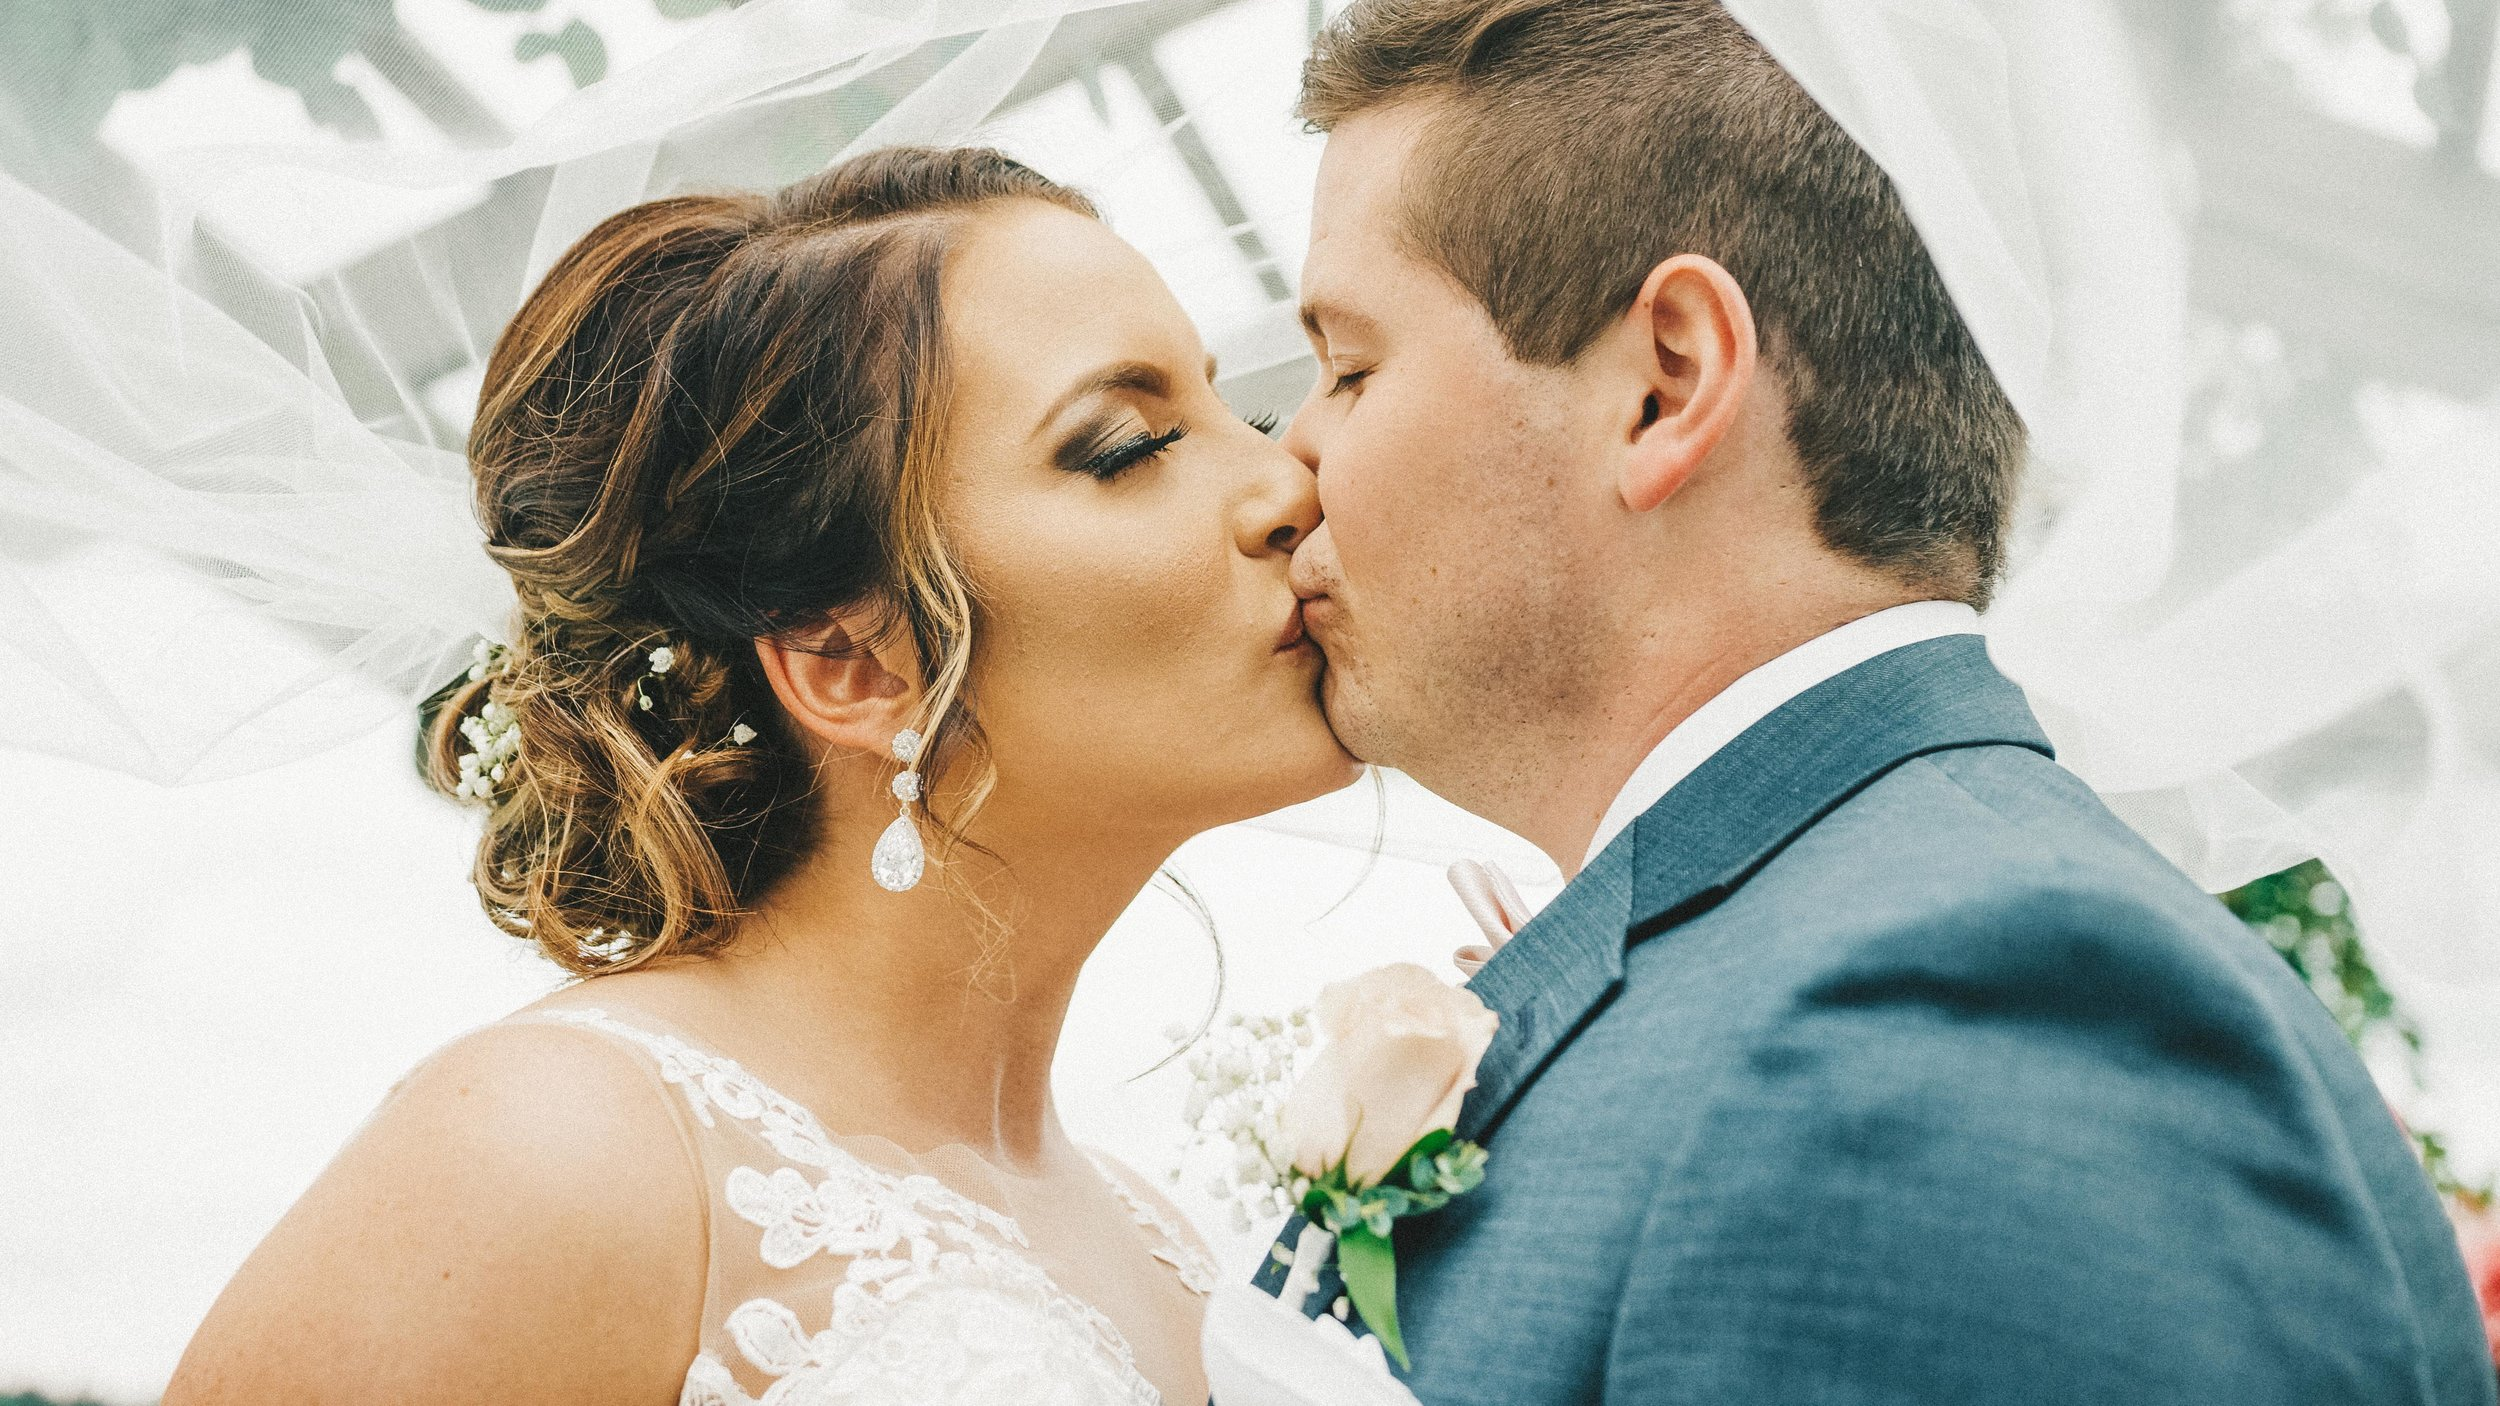 Kaitie&Jordan-TheKelleyFarmWedding-NewlyFilms-16x9-13.jpg